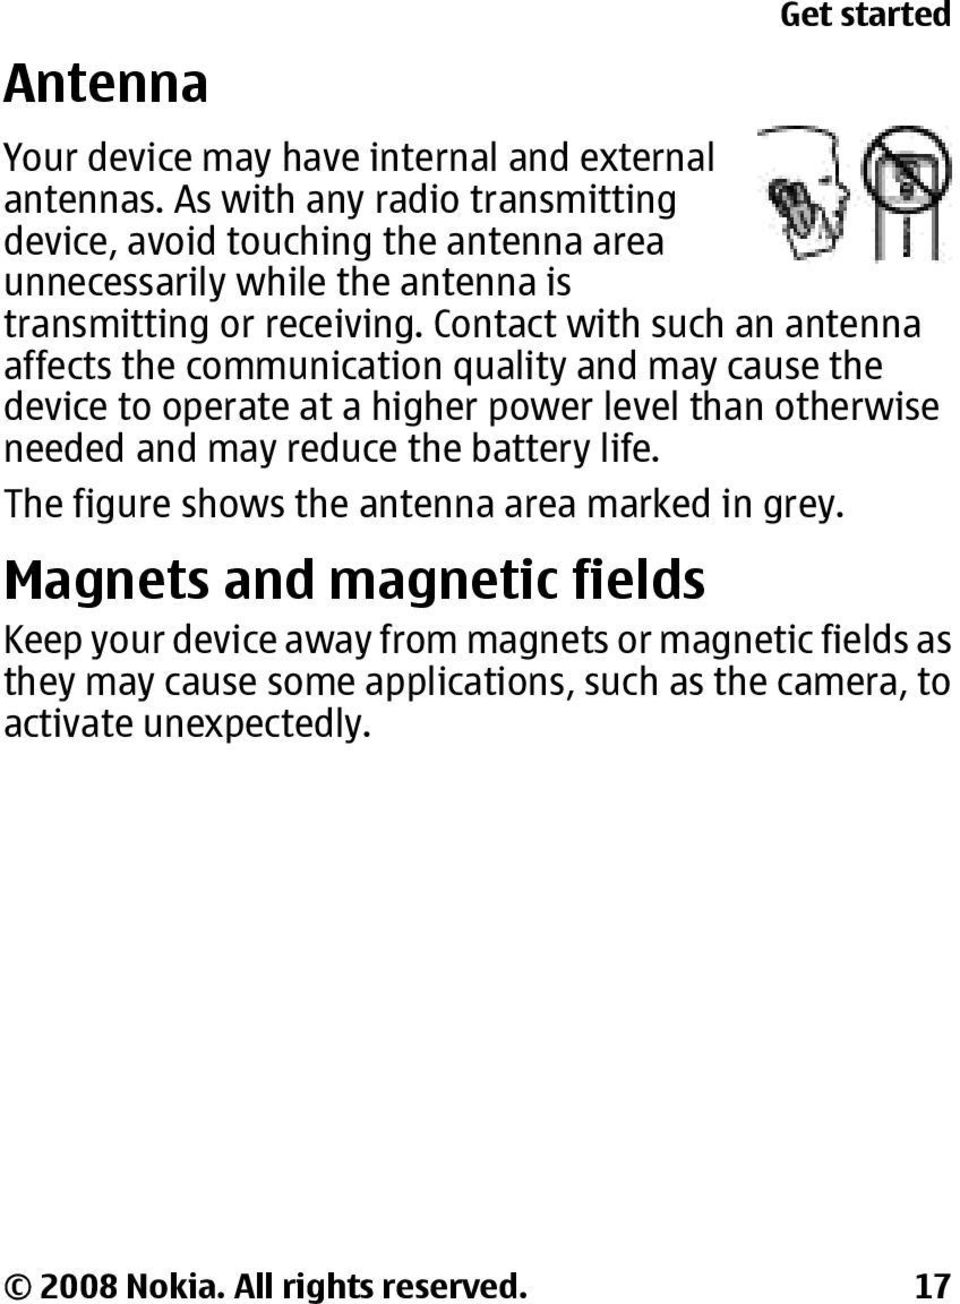 Contact with such an antenna affects the communication quality and may cause the device to operate at a higher power level than otherwise needed and may